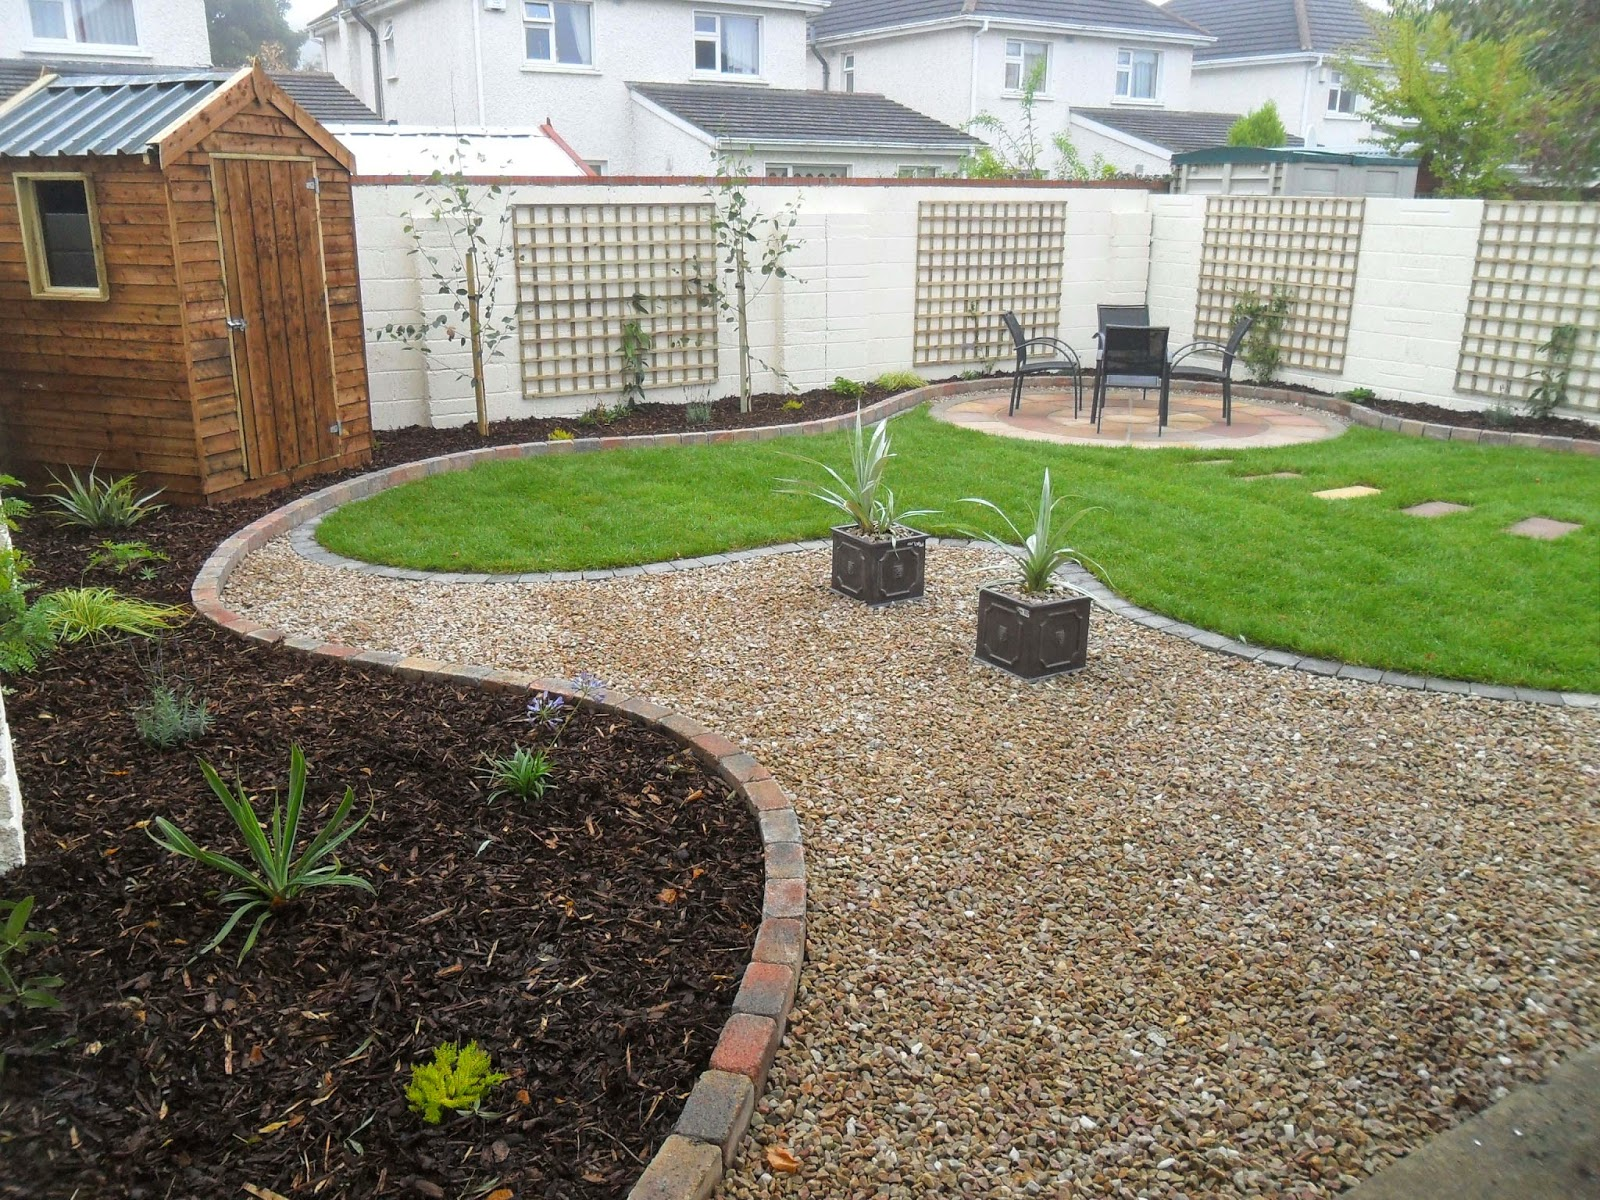 GreenArt Landscapes Garden design,construction and ... on Patio And Gravel Garden Ideas id=73215